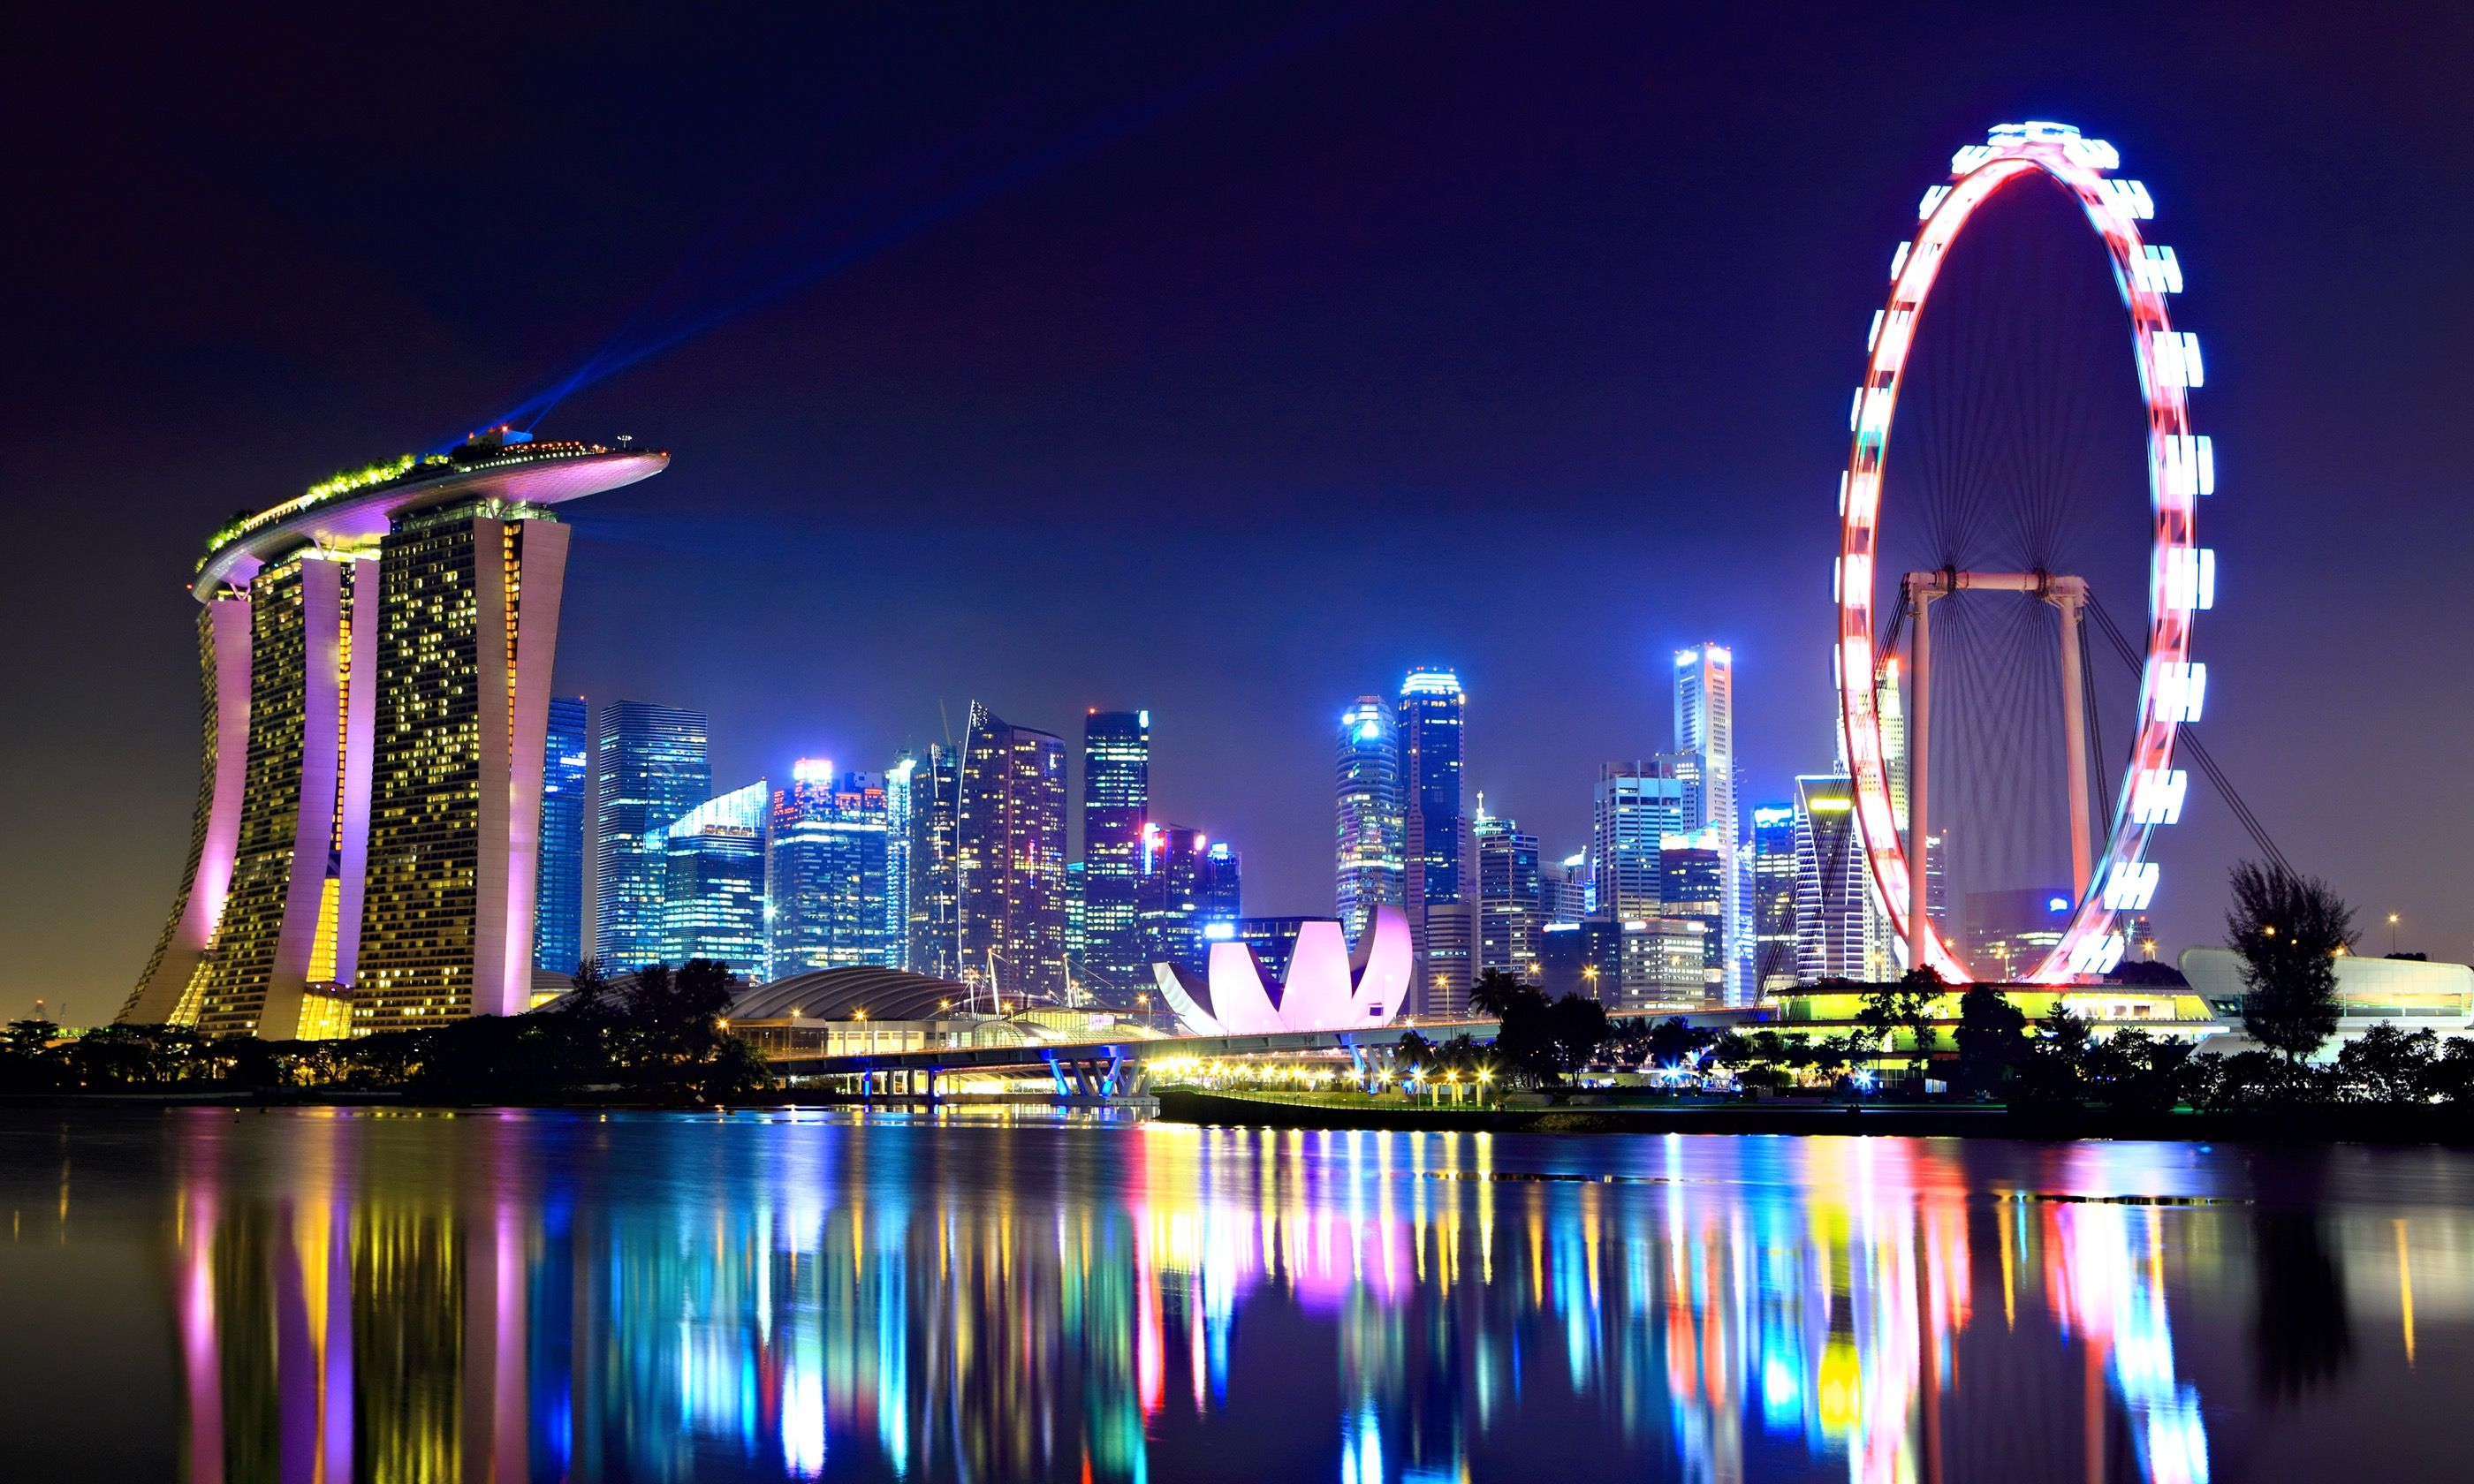 Singapore skyline at night (Shutterstock.com)